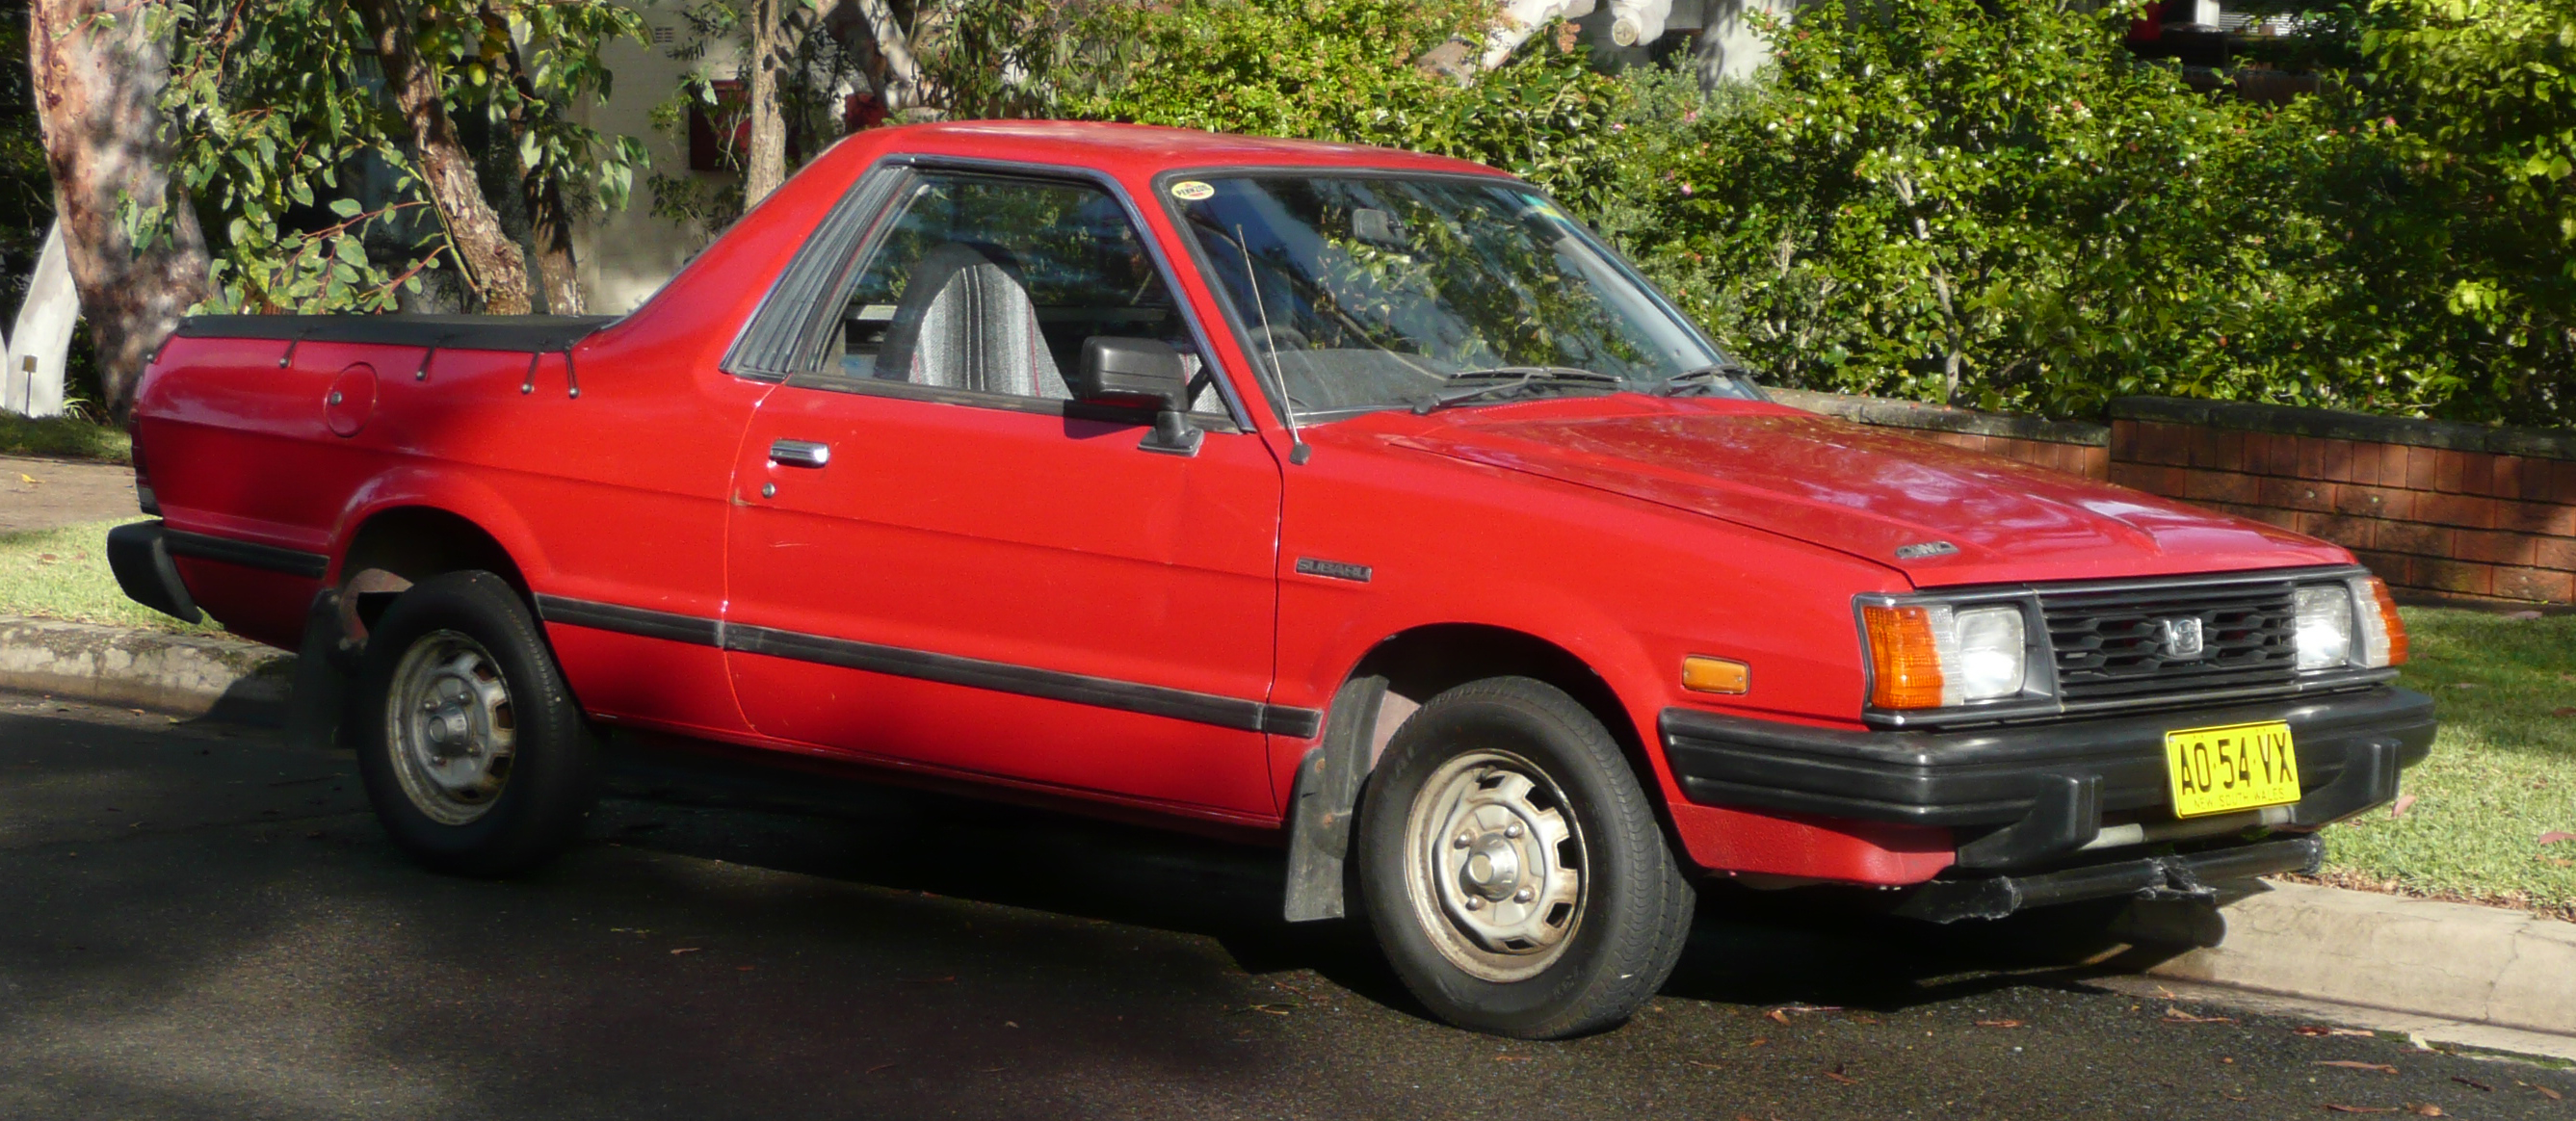 Subaru Brat Wikipedia 2012 Impreza Engine Diagram